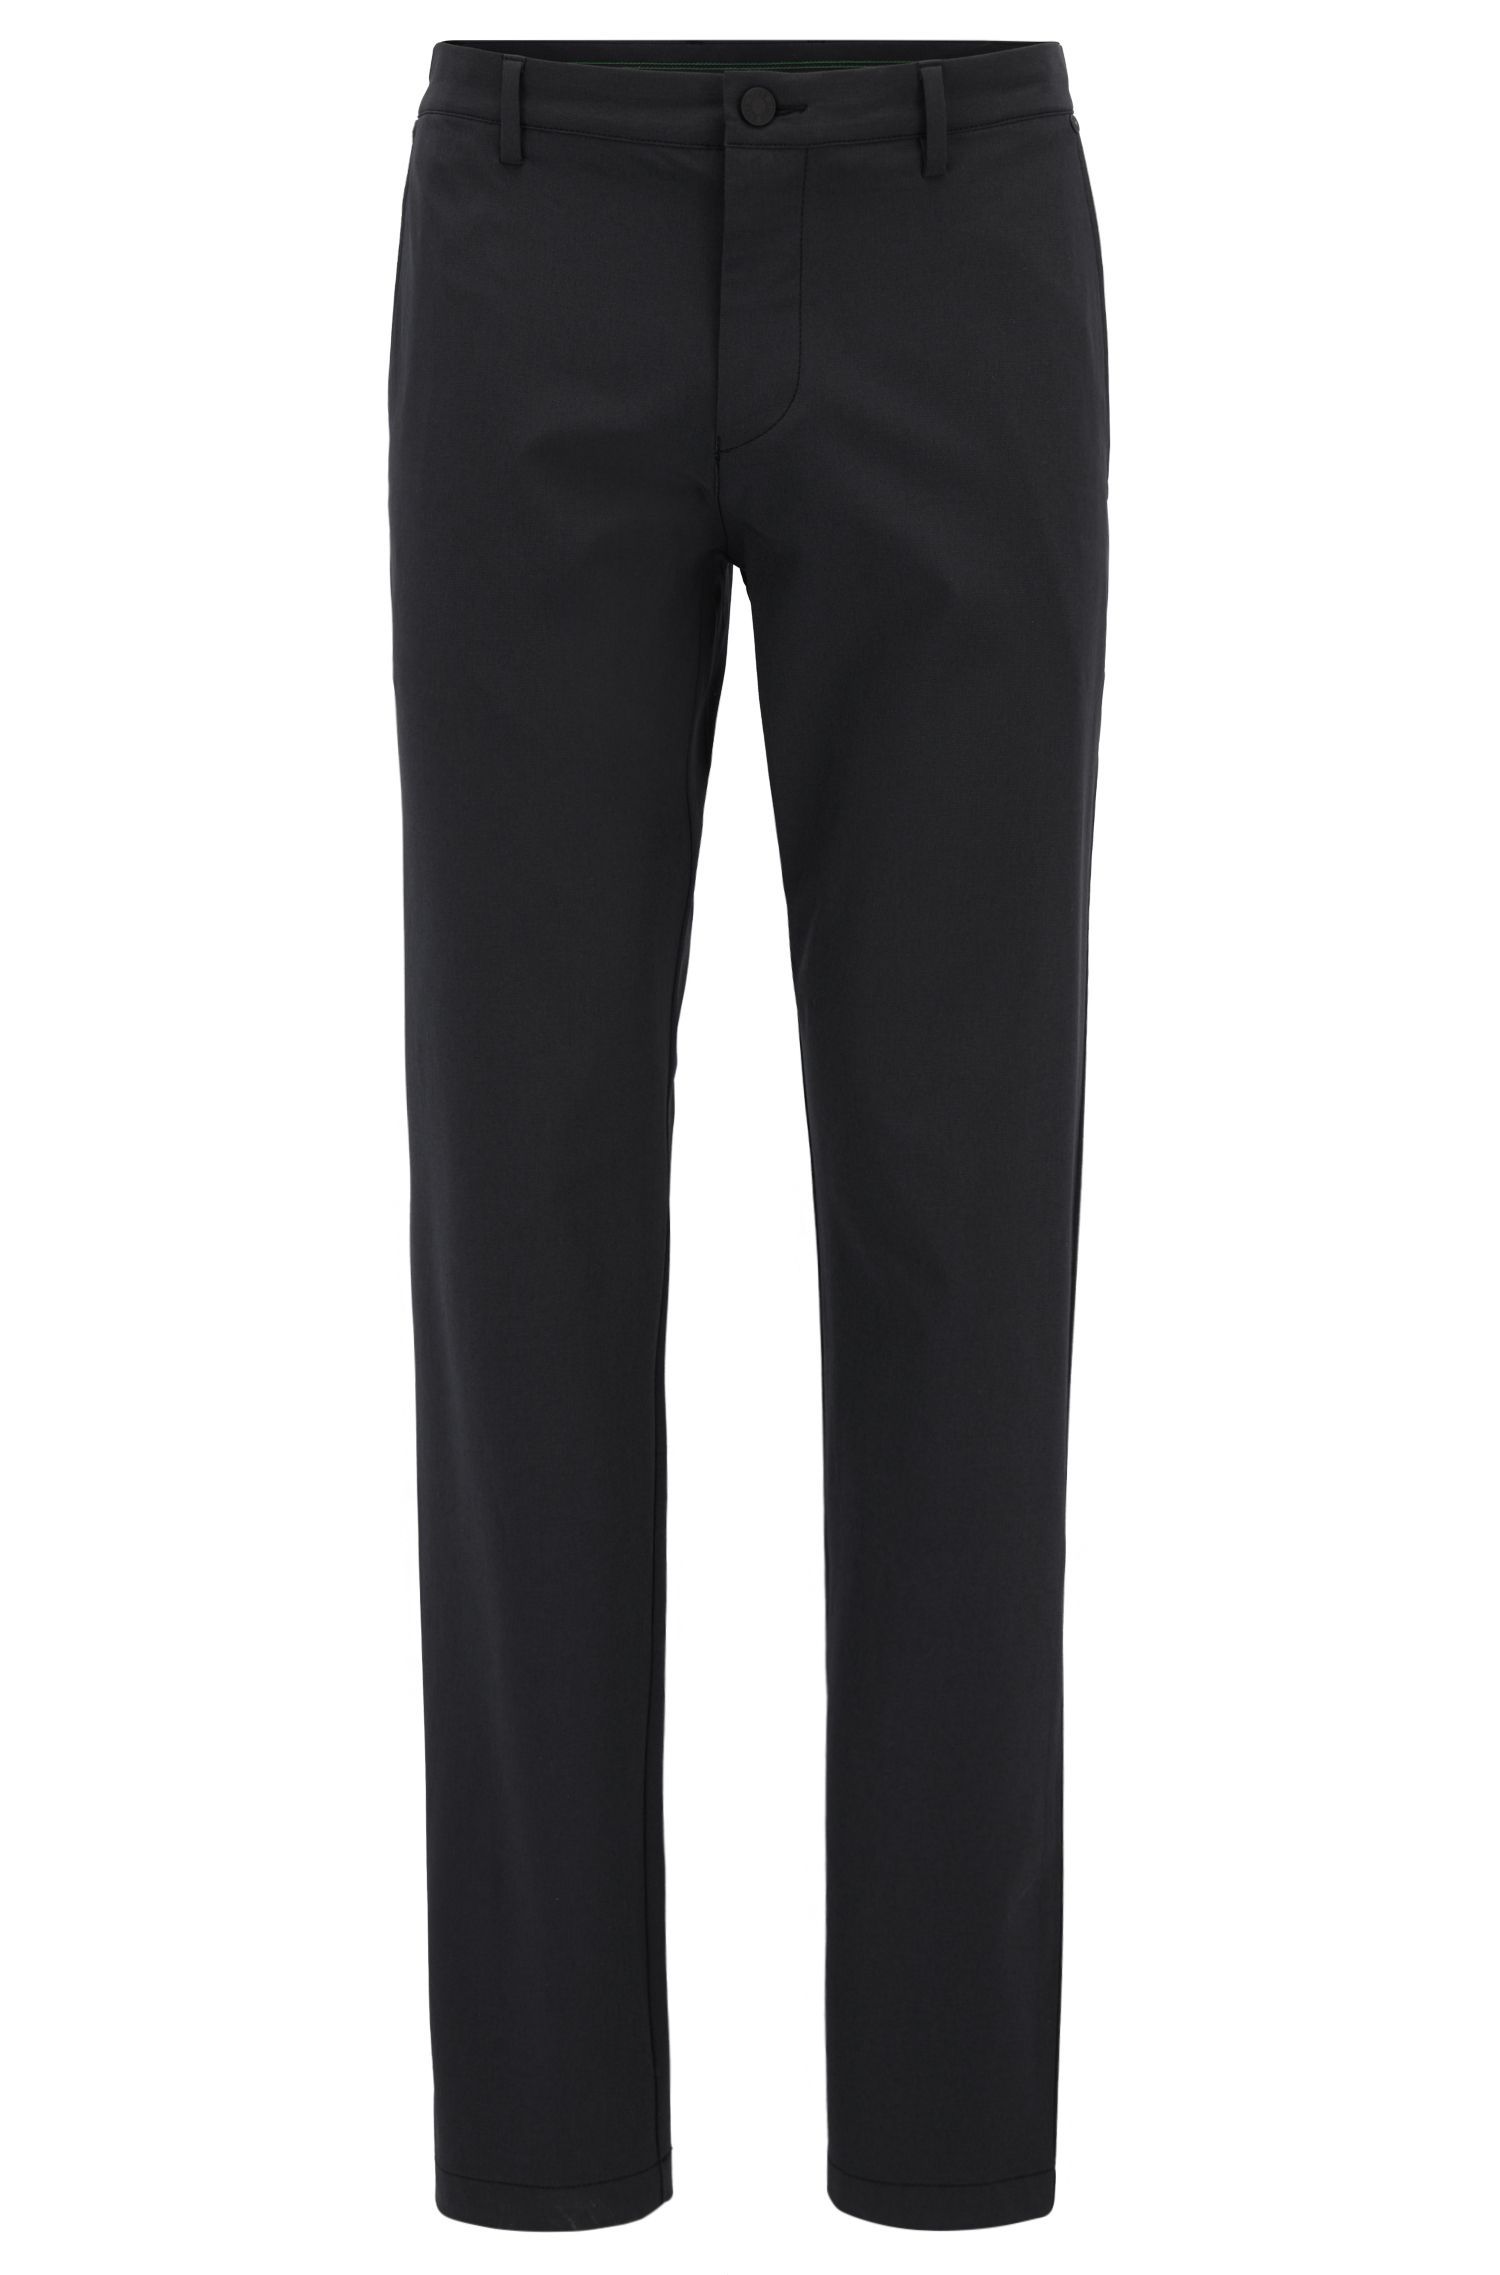 Pantalon Extra Slim Fit en tissu technique stretch